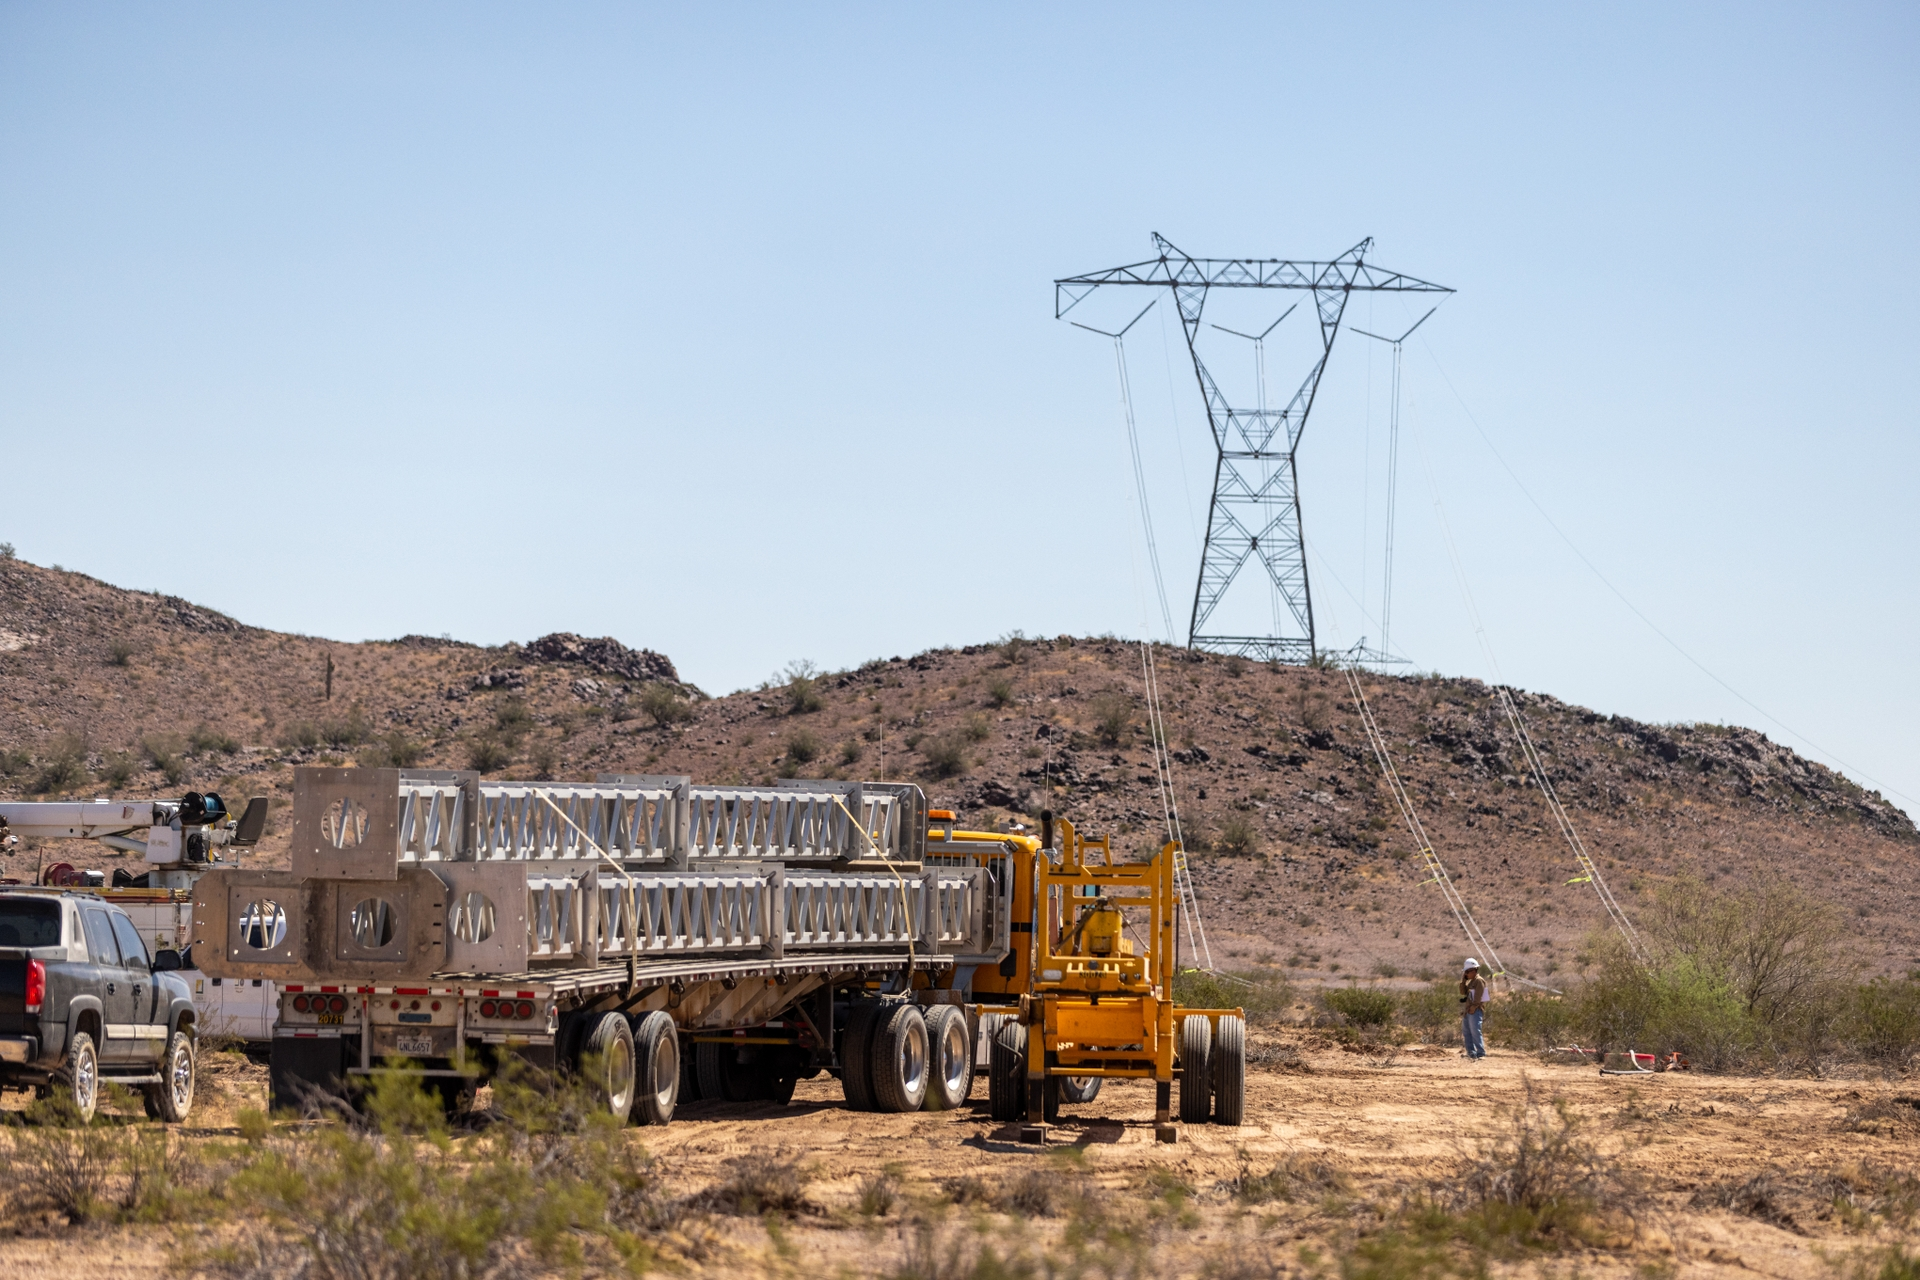 Lindsey tower components delivered to the site of downed transmission lines in urgent need of repair.